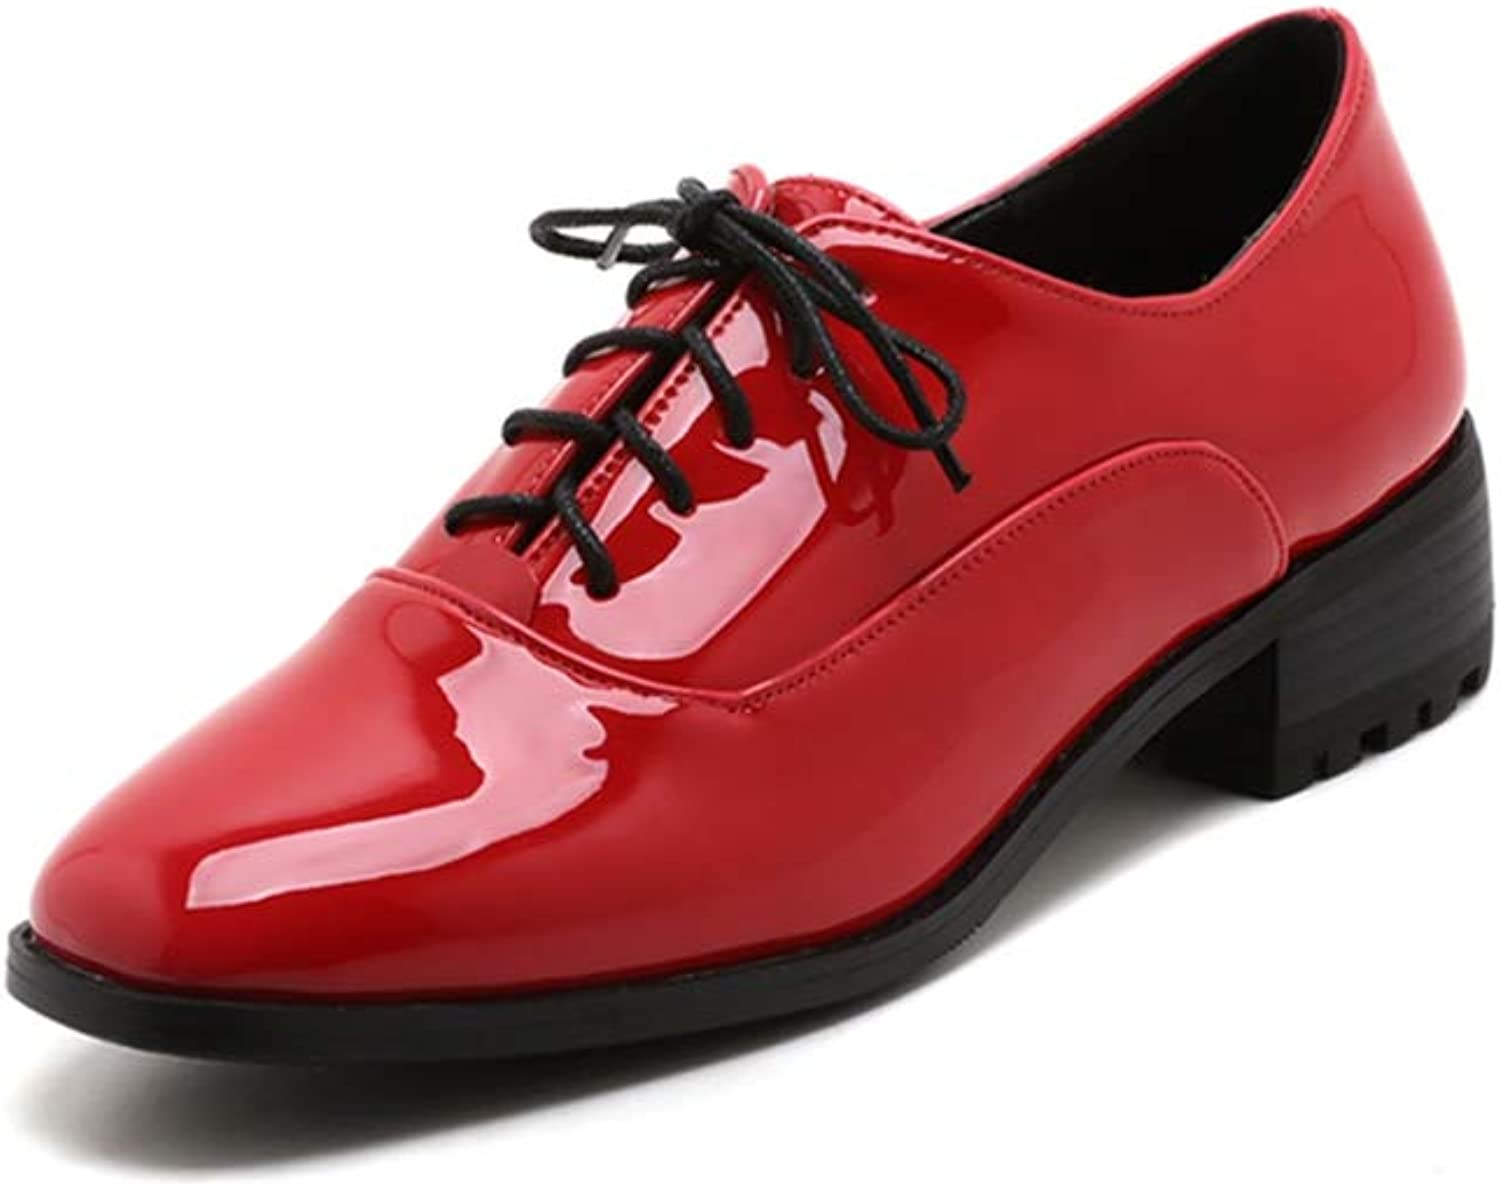 GIY Women's Classic Penny Loafers Lace Up Square Toe Patent Leather Low Heel School Dress Oxford shoes